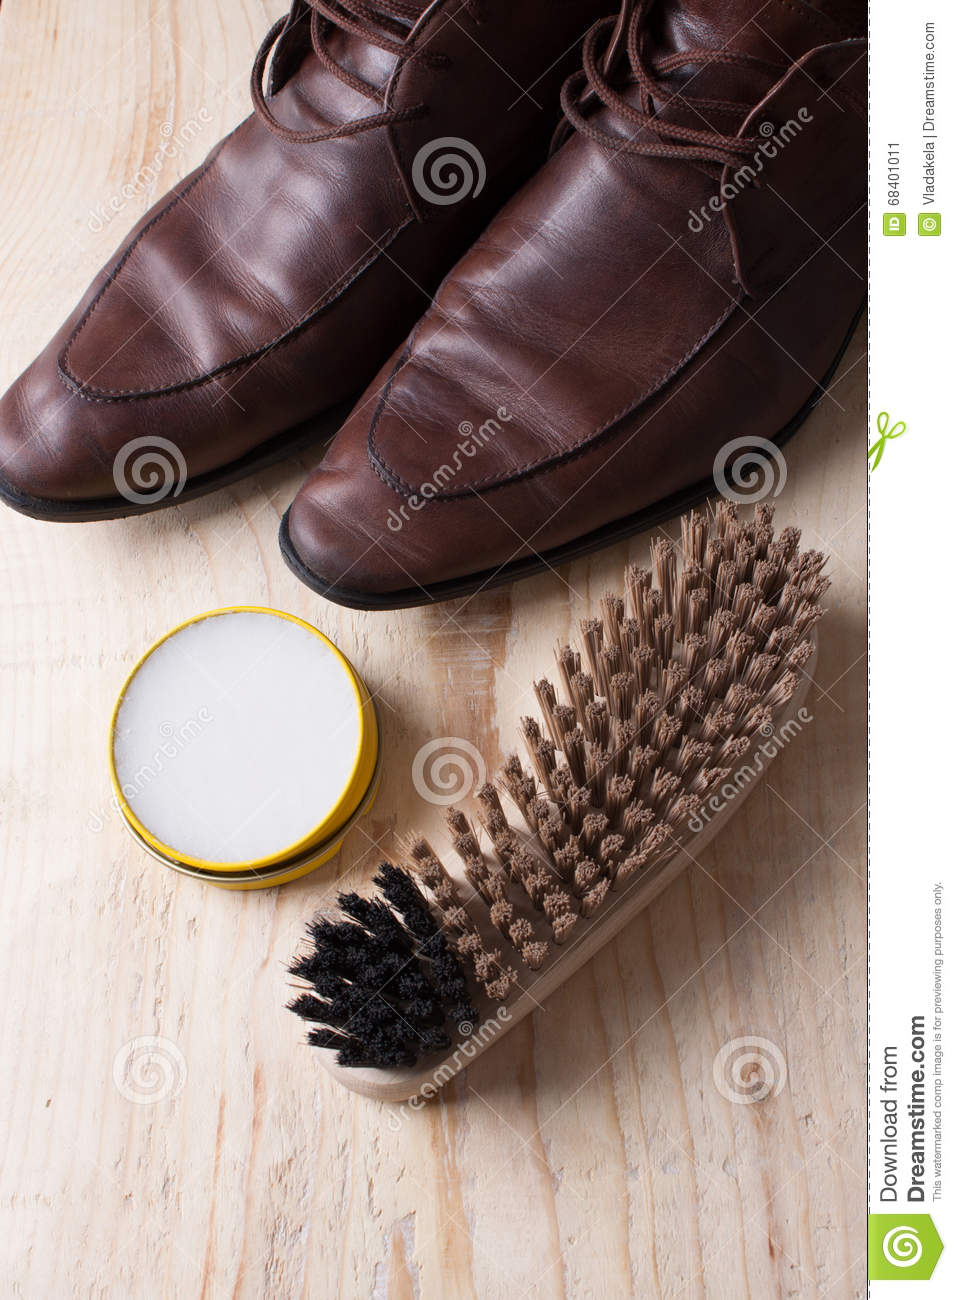 Waxing Leather Shoes